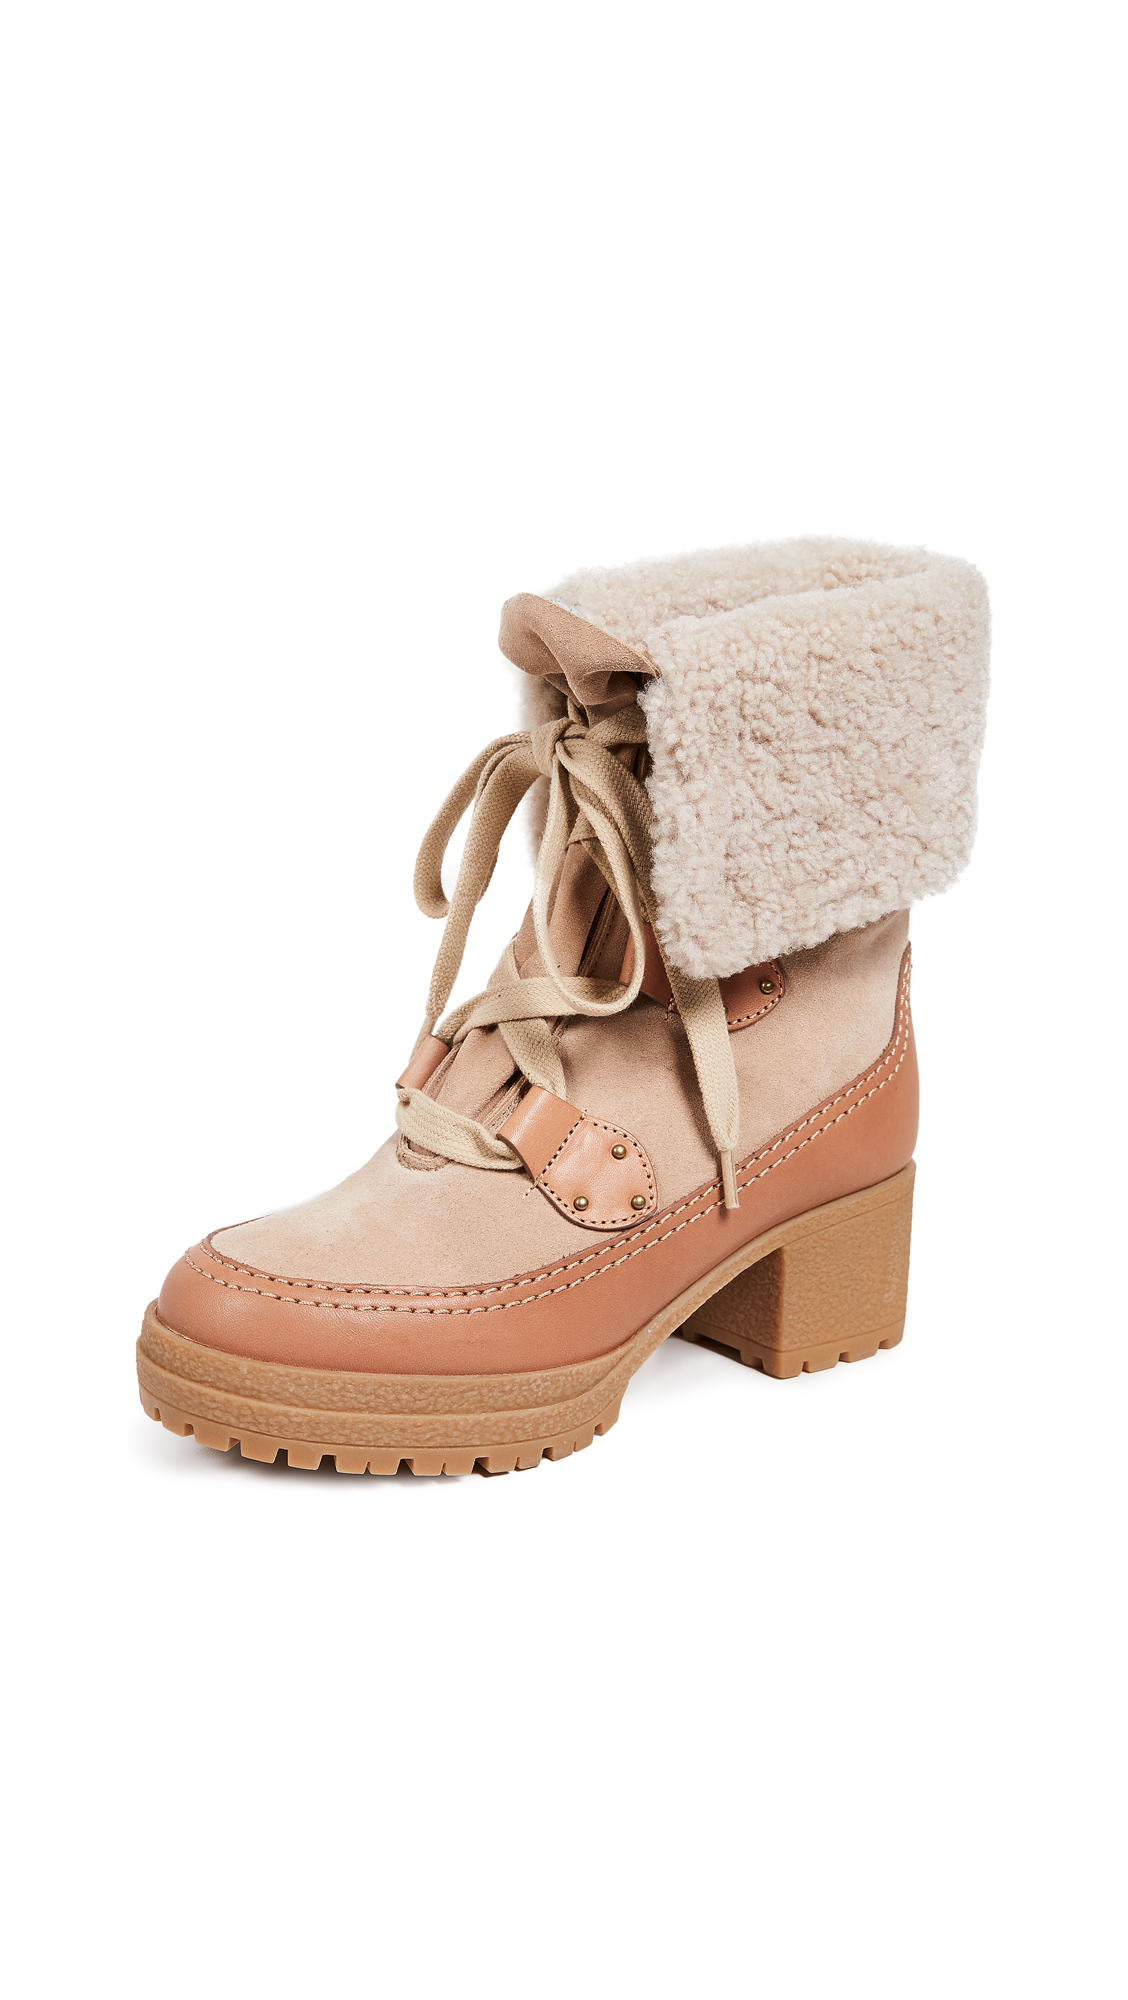 See by Chloe Verena Mid-Heel Booties - Natural